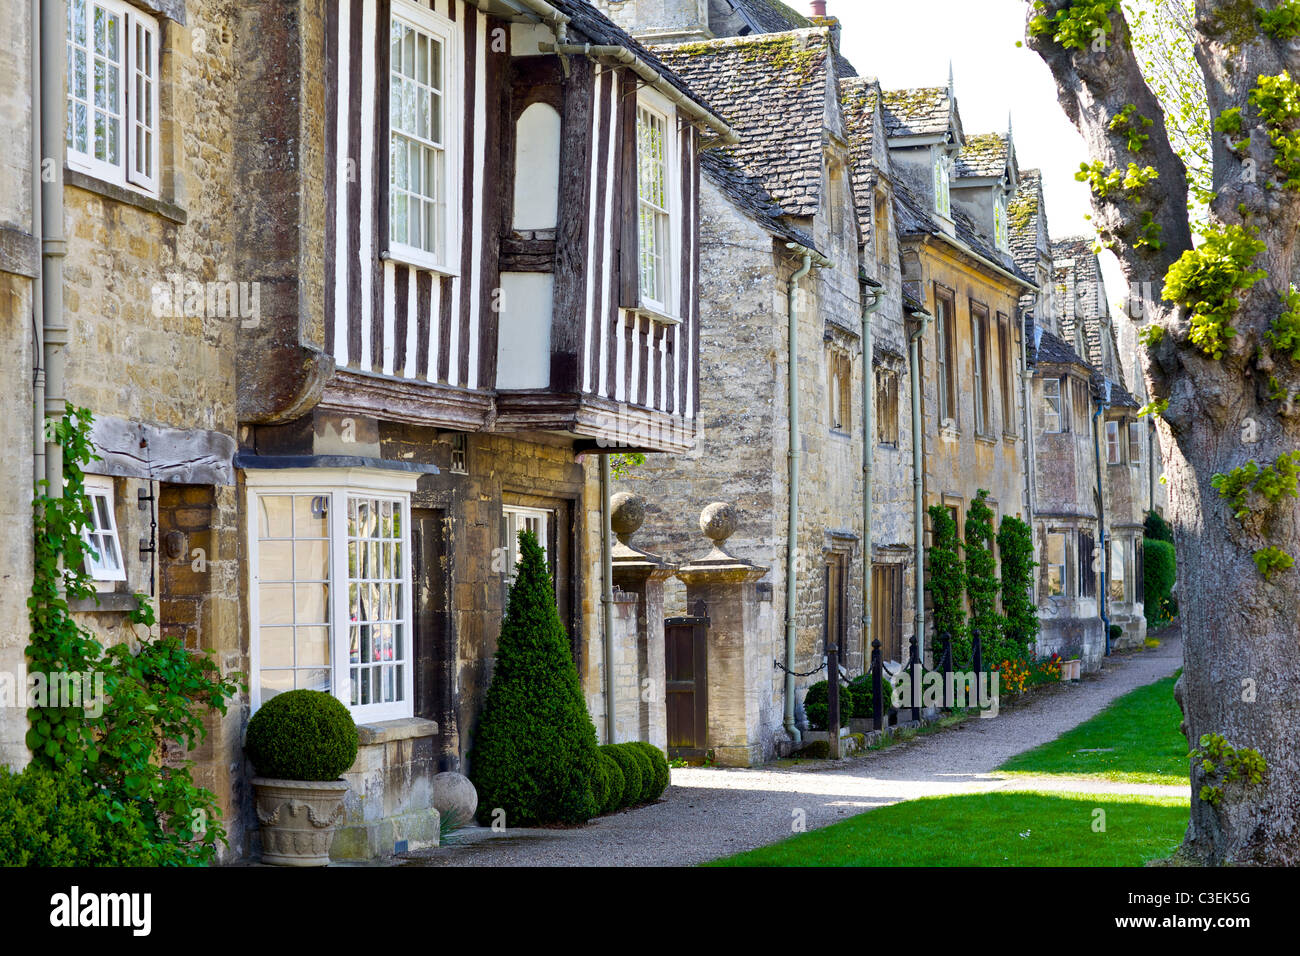 Burford is a small town on the River Windrush in the Cotswold hills in west Oxfordshire, England. - Stock Image